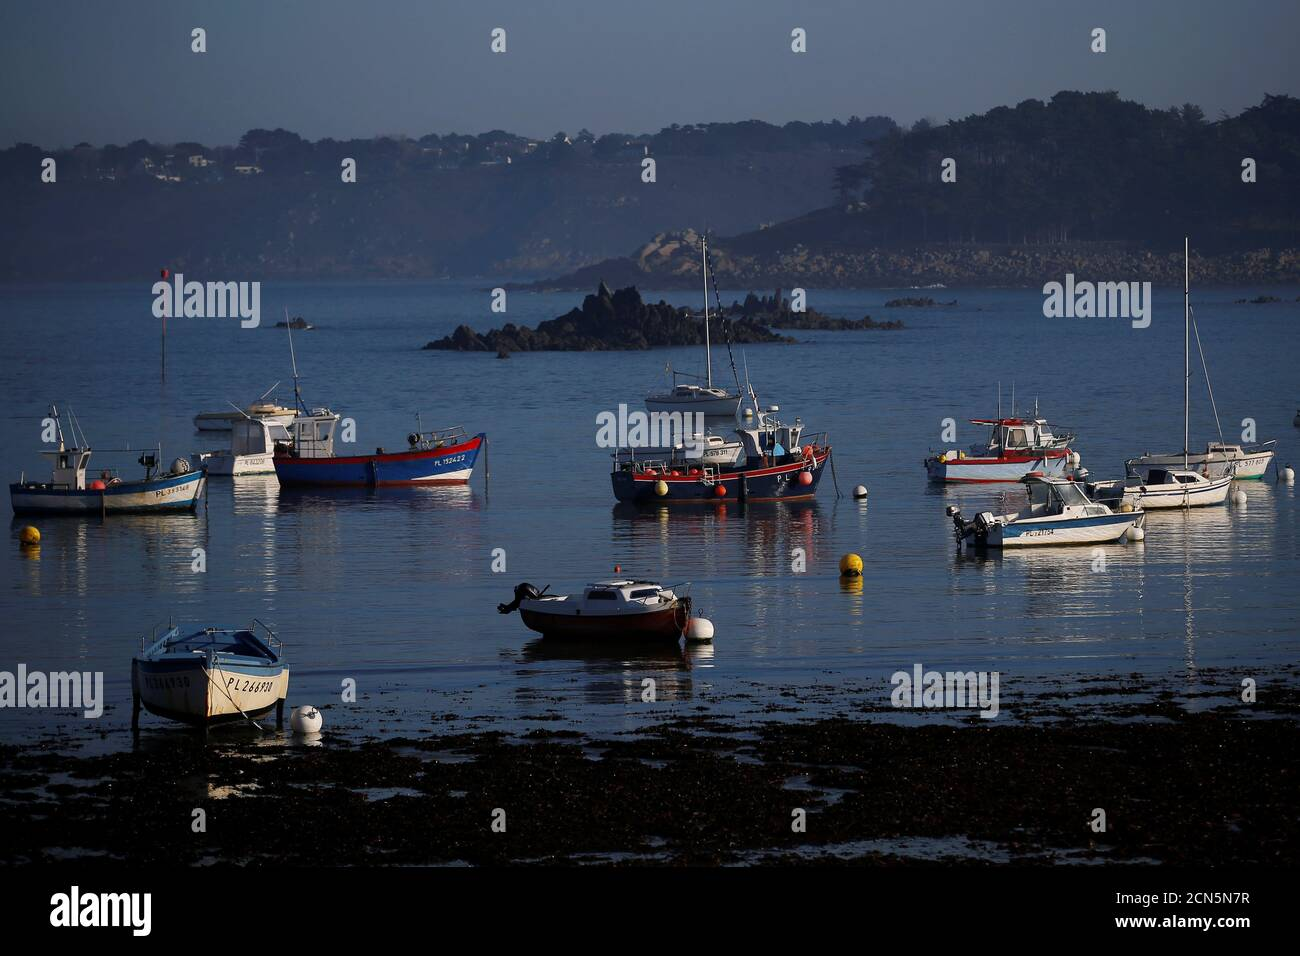 Boats are seen in the harbor of Tredrez-Locquemeau near Lannion, Brittany's Atlantic coast, December 17, 2016. REUTERS/Stephane Mahe Stock Photo